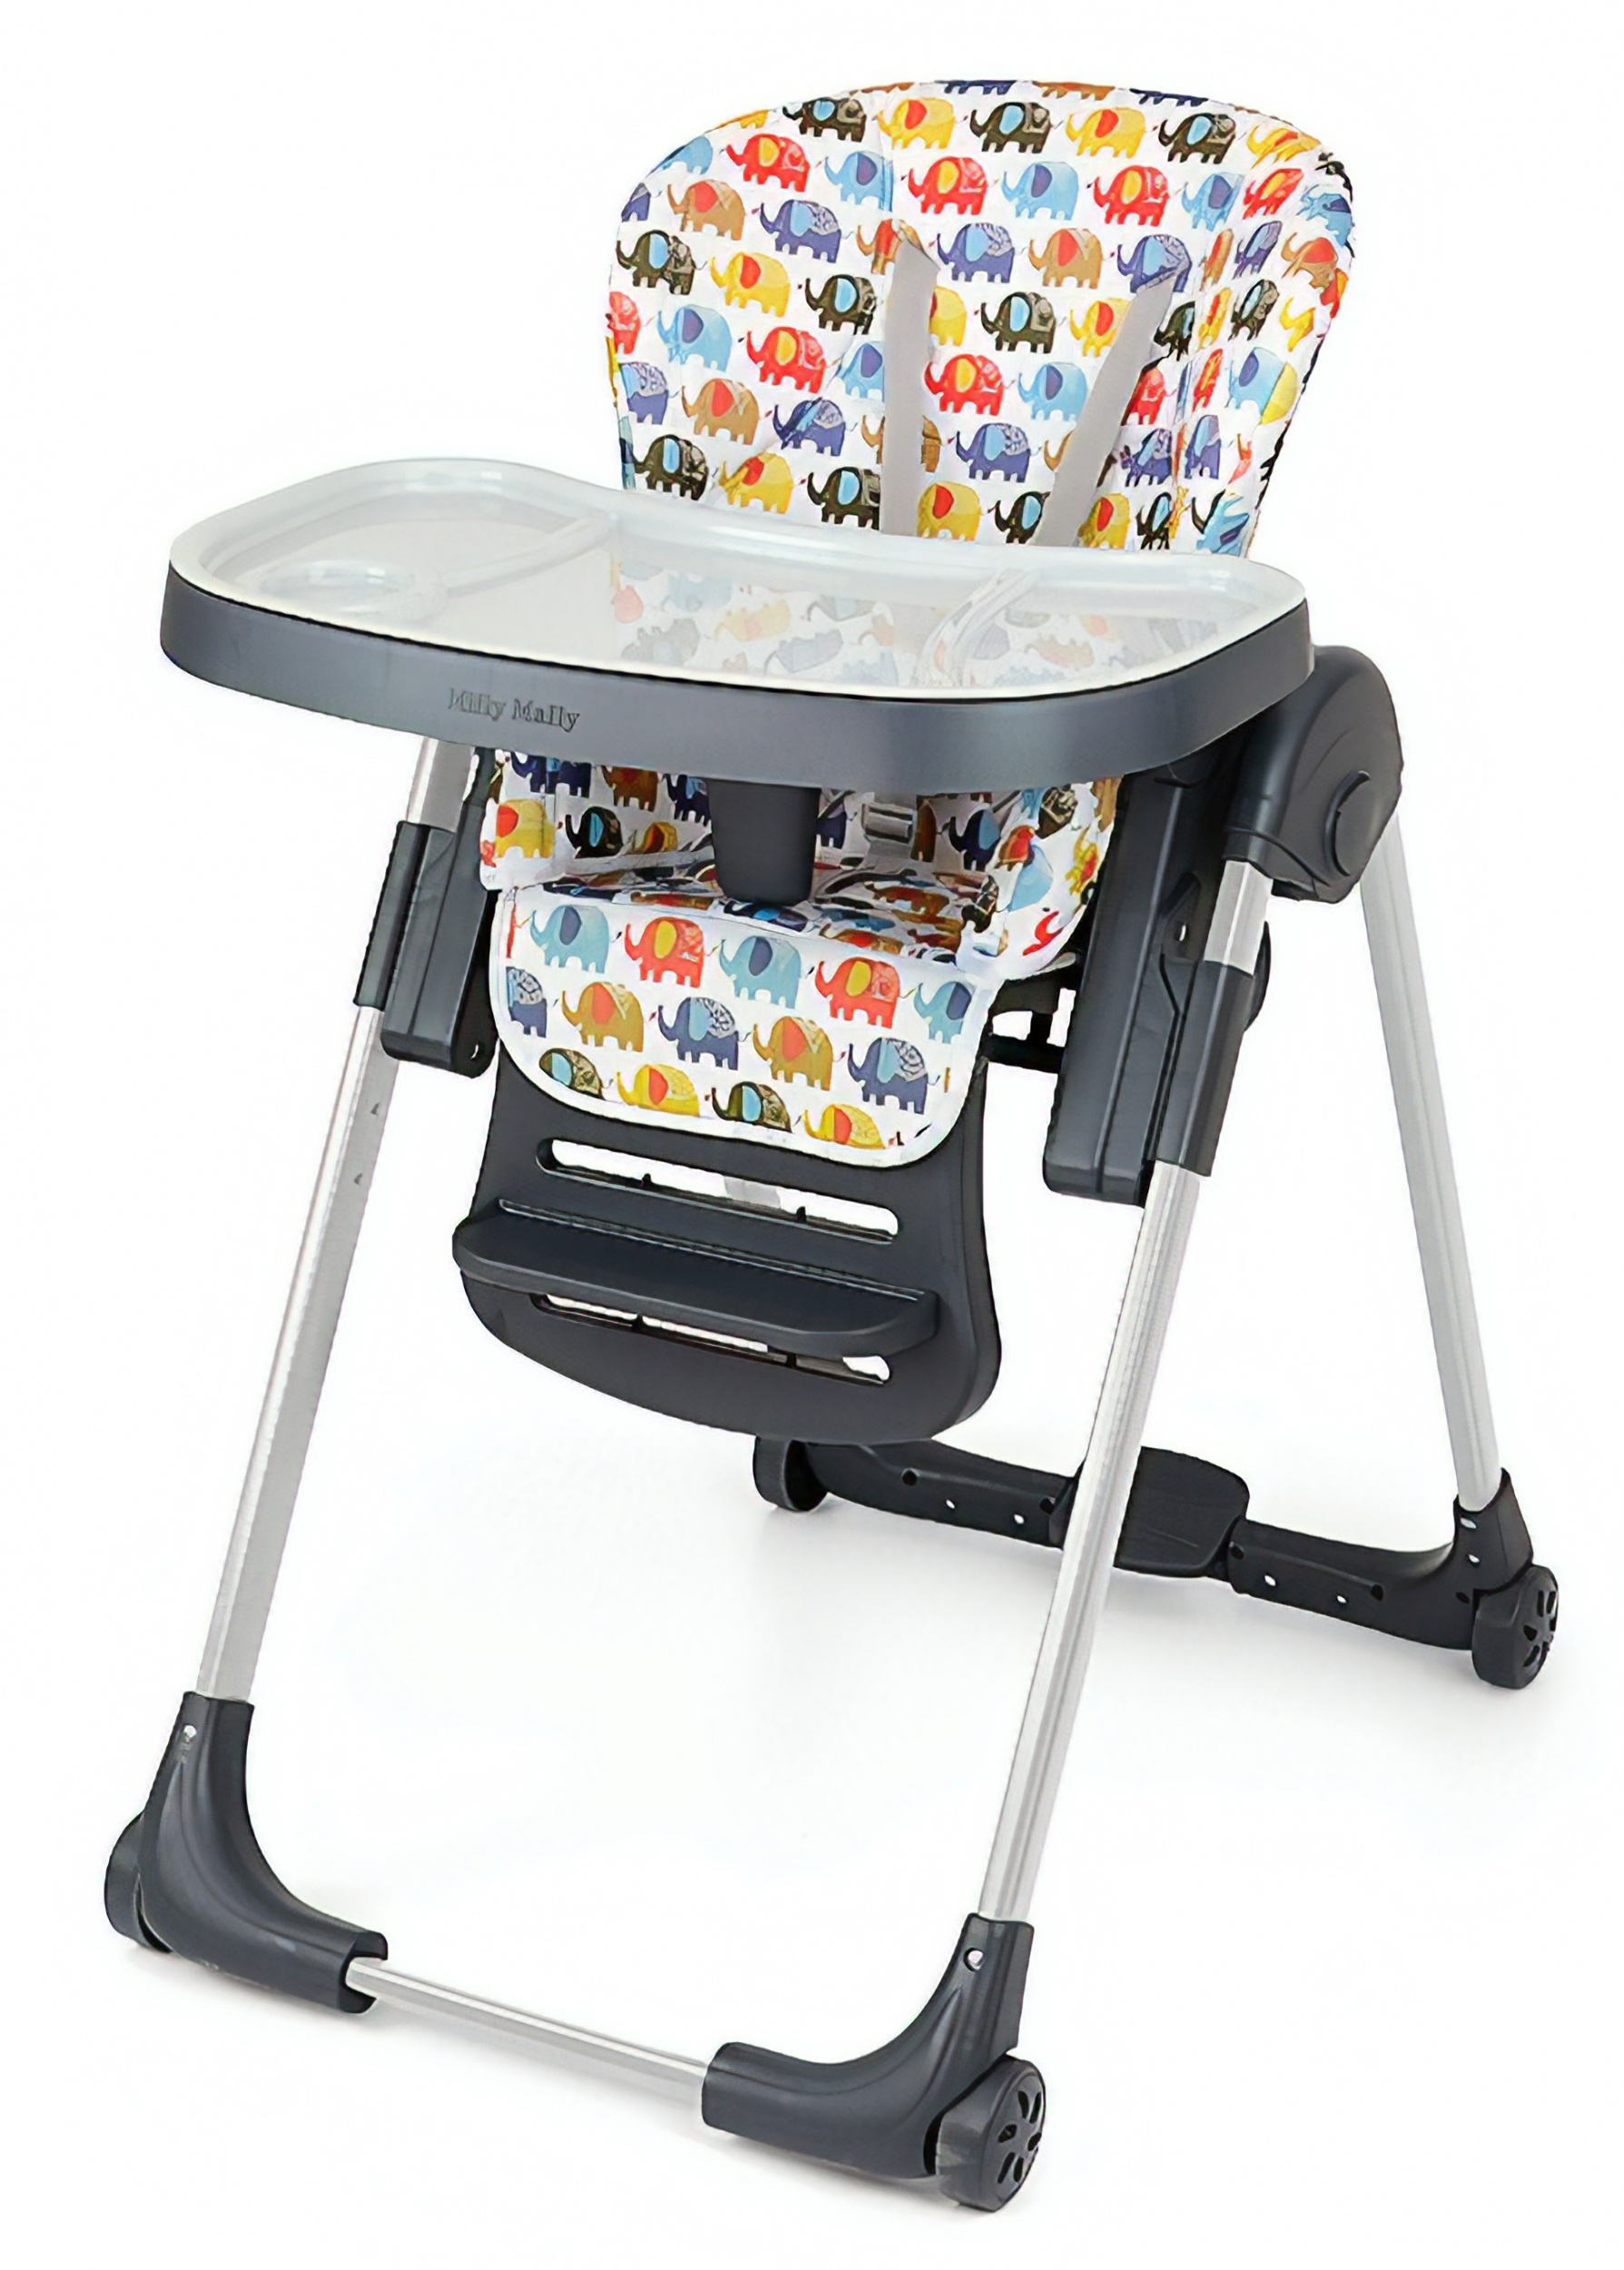 f84440f8c10 Milly Mally high chair Milano Elephant102 cm multicolor - Internet-Toys